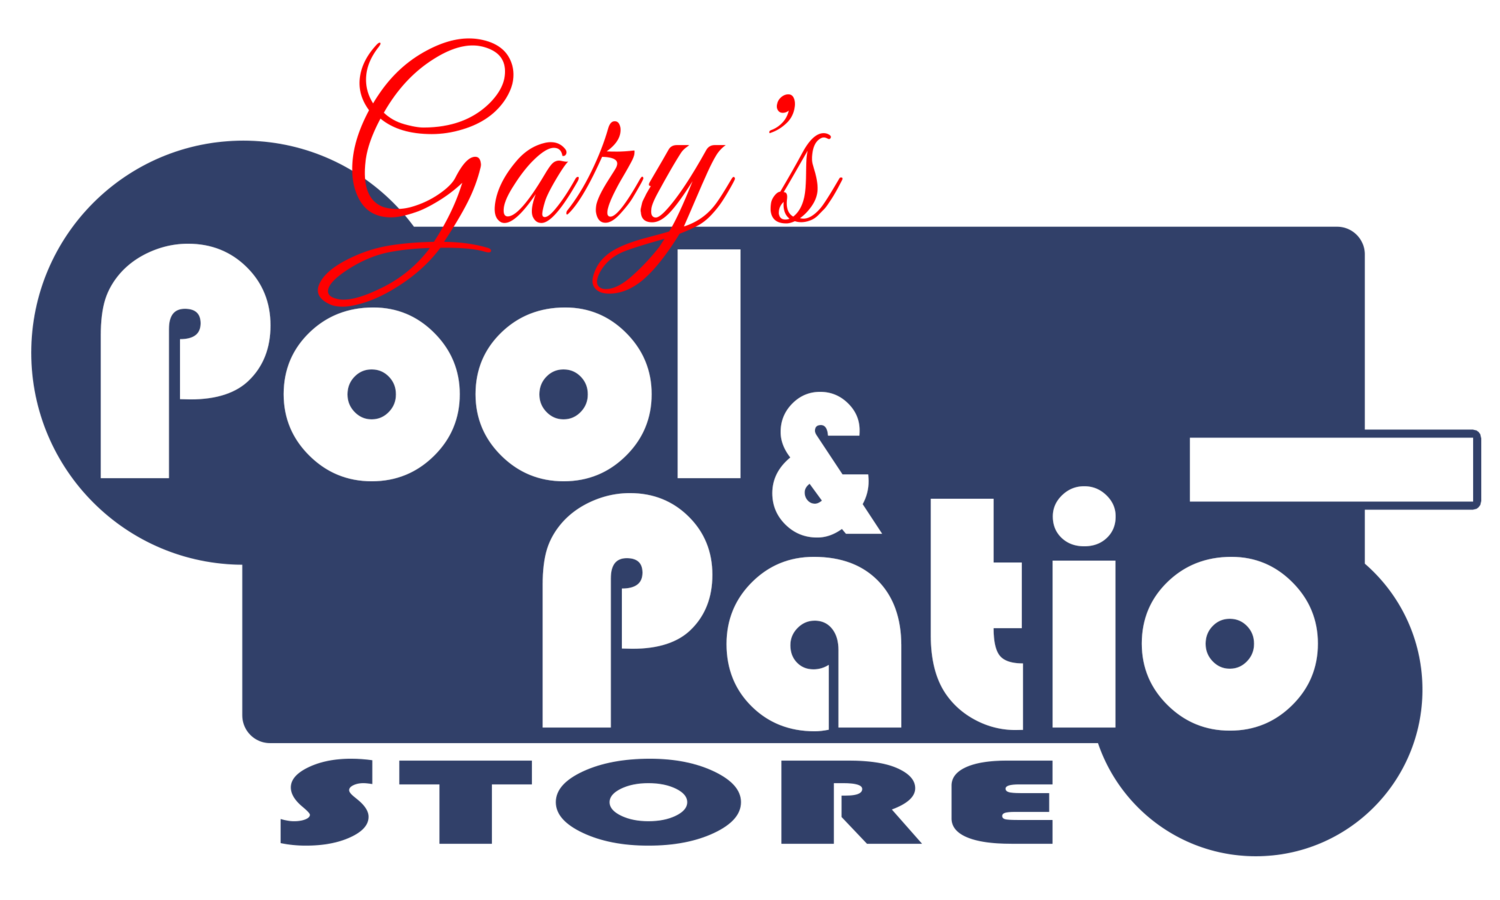 Gary's Pool and Patio Logo